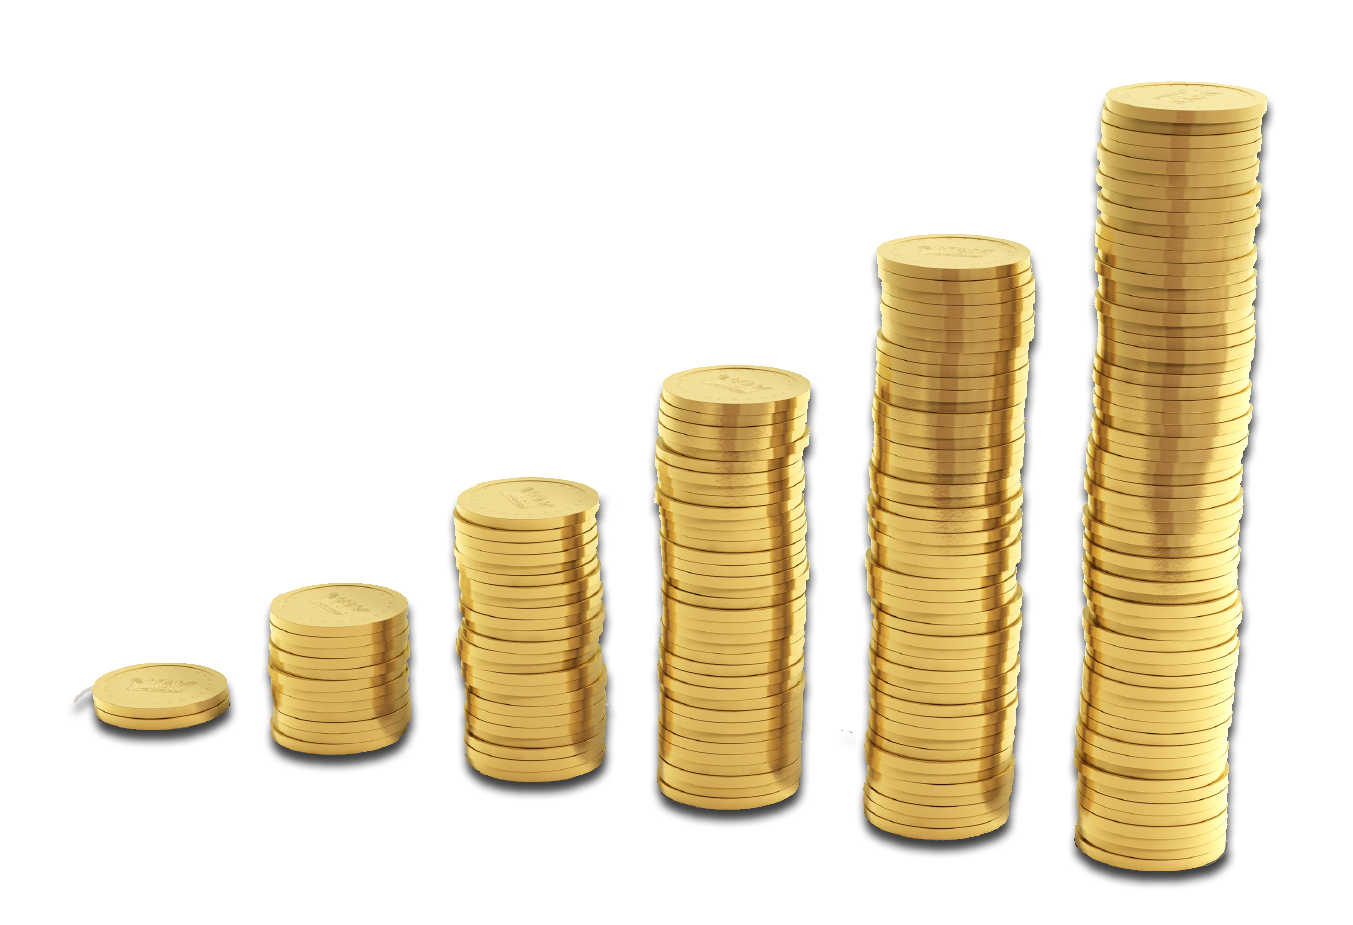 Stacked coins png. Pic mart